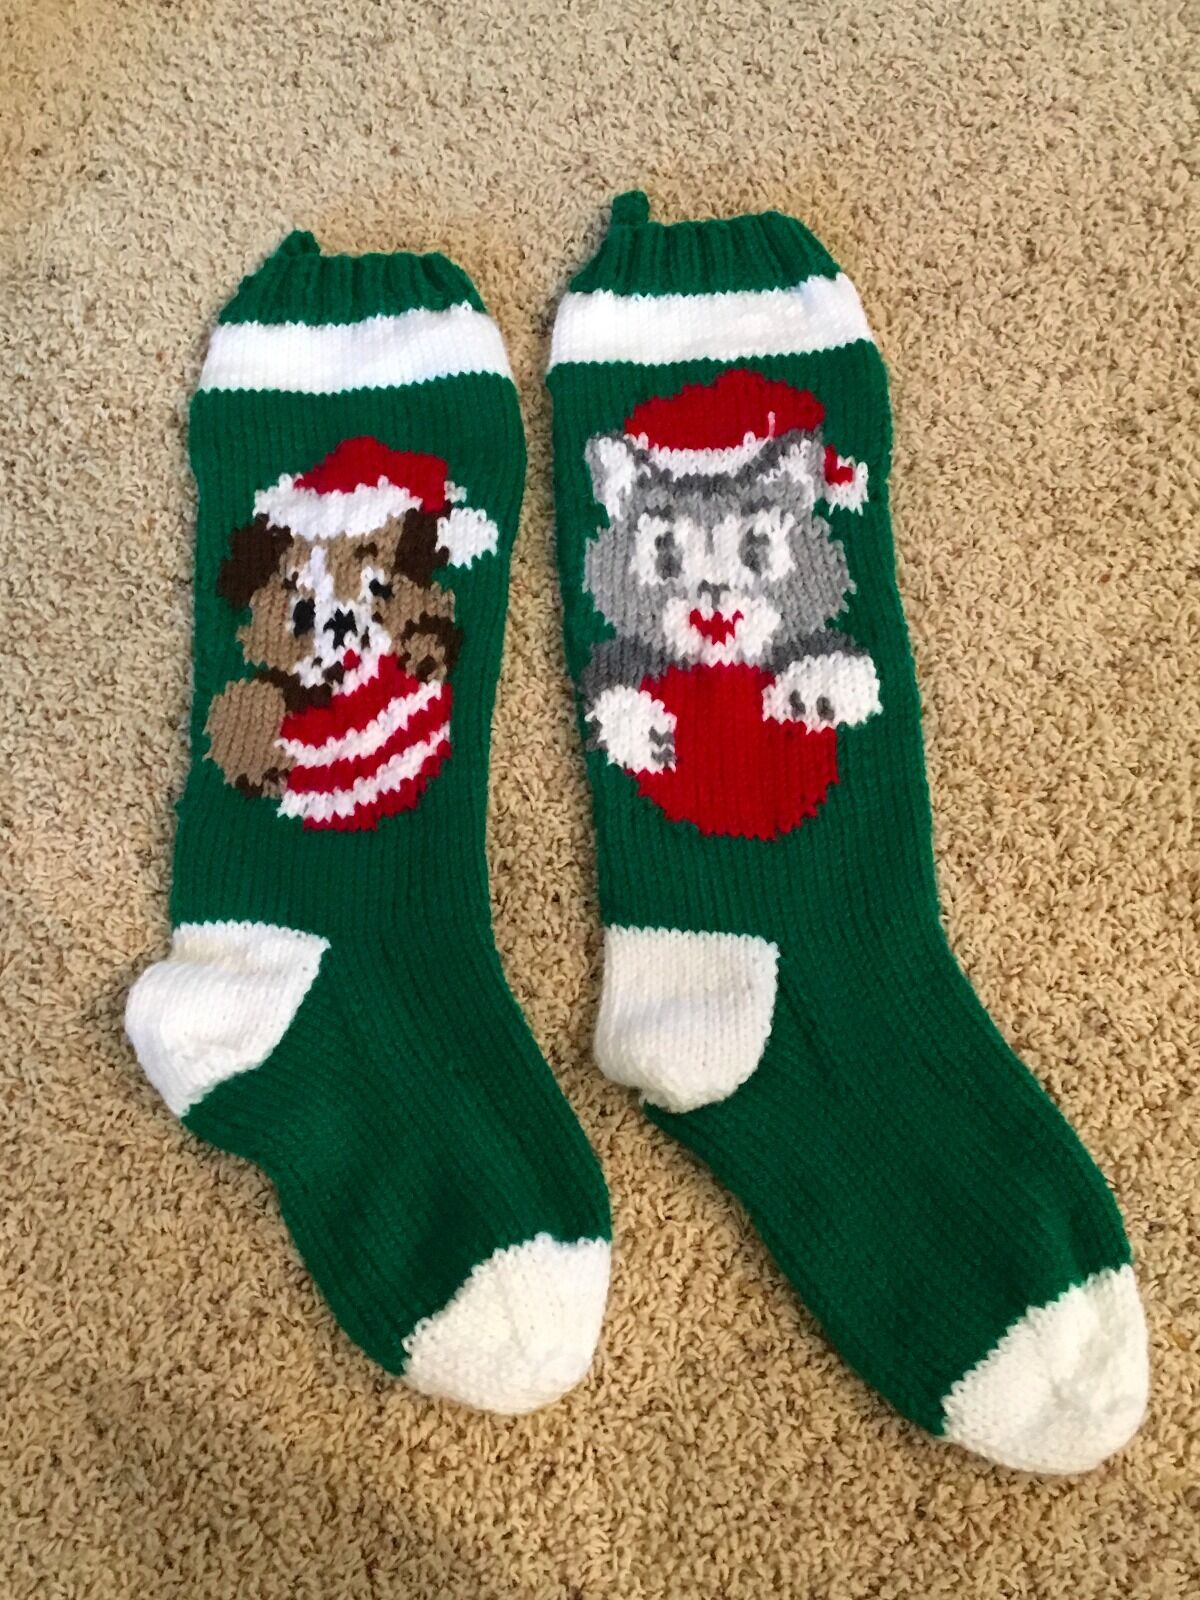 PERSONALIZED HAND KNIT Christmas Stocking - $40.00 | PicClick